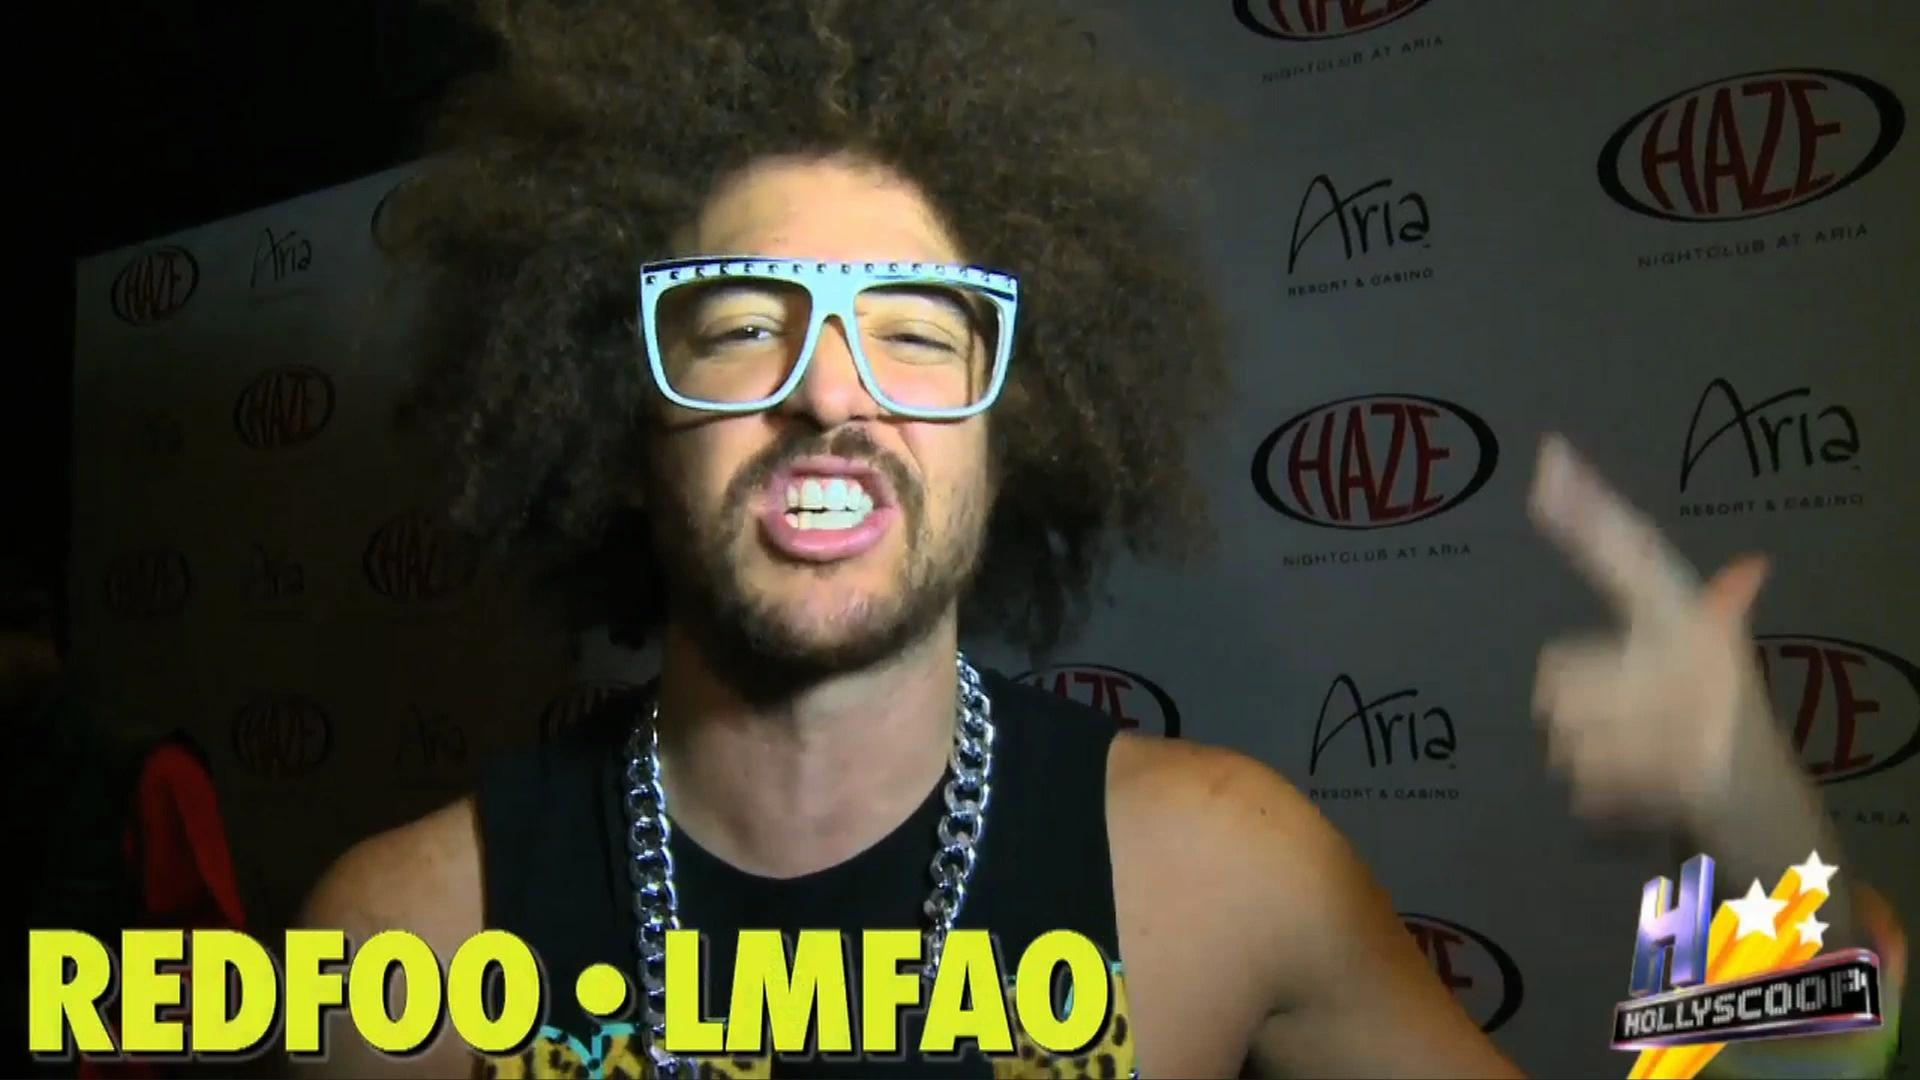 Lmfao Party Rock Anthem Album Lmfao on Party Rock Business